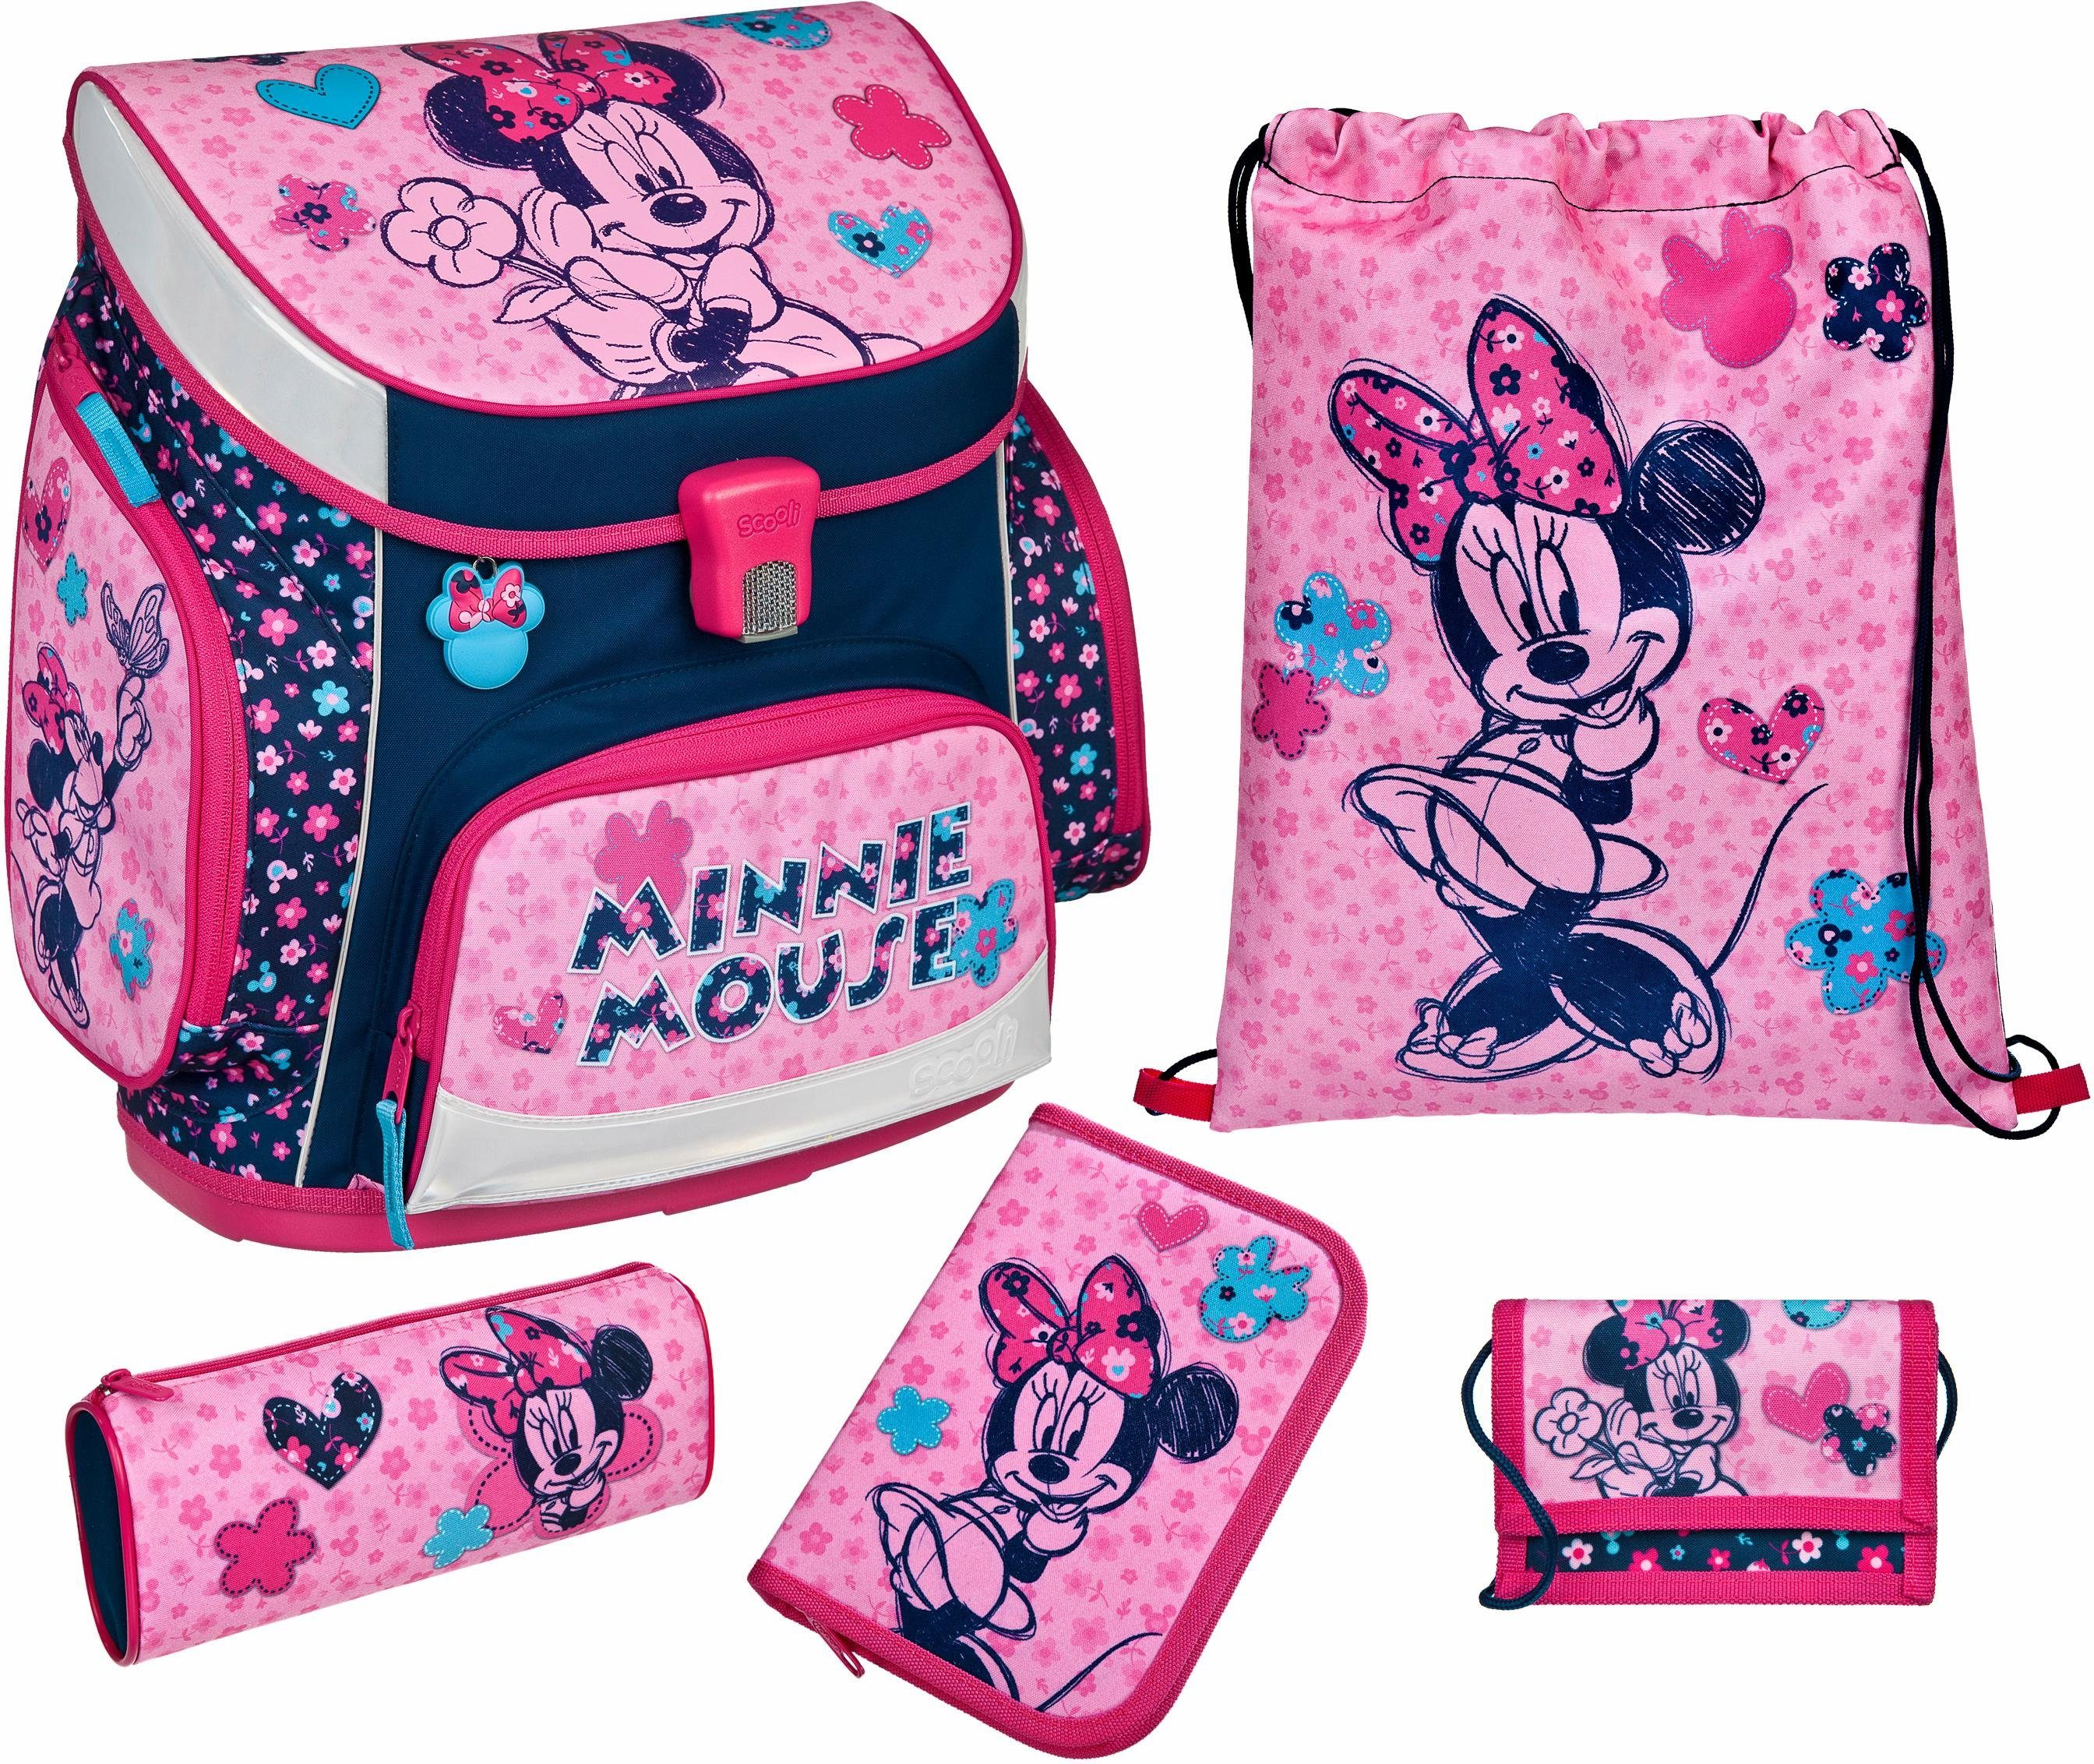 Scooli Schulranzen Set 5-tlg., »Campus Up Minnie Mouse«